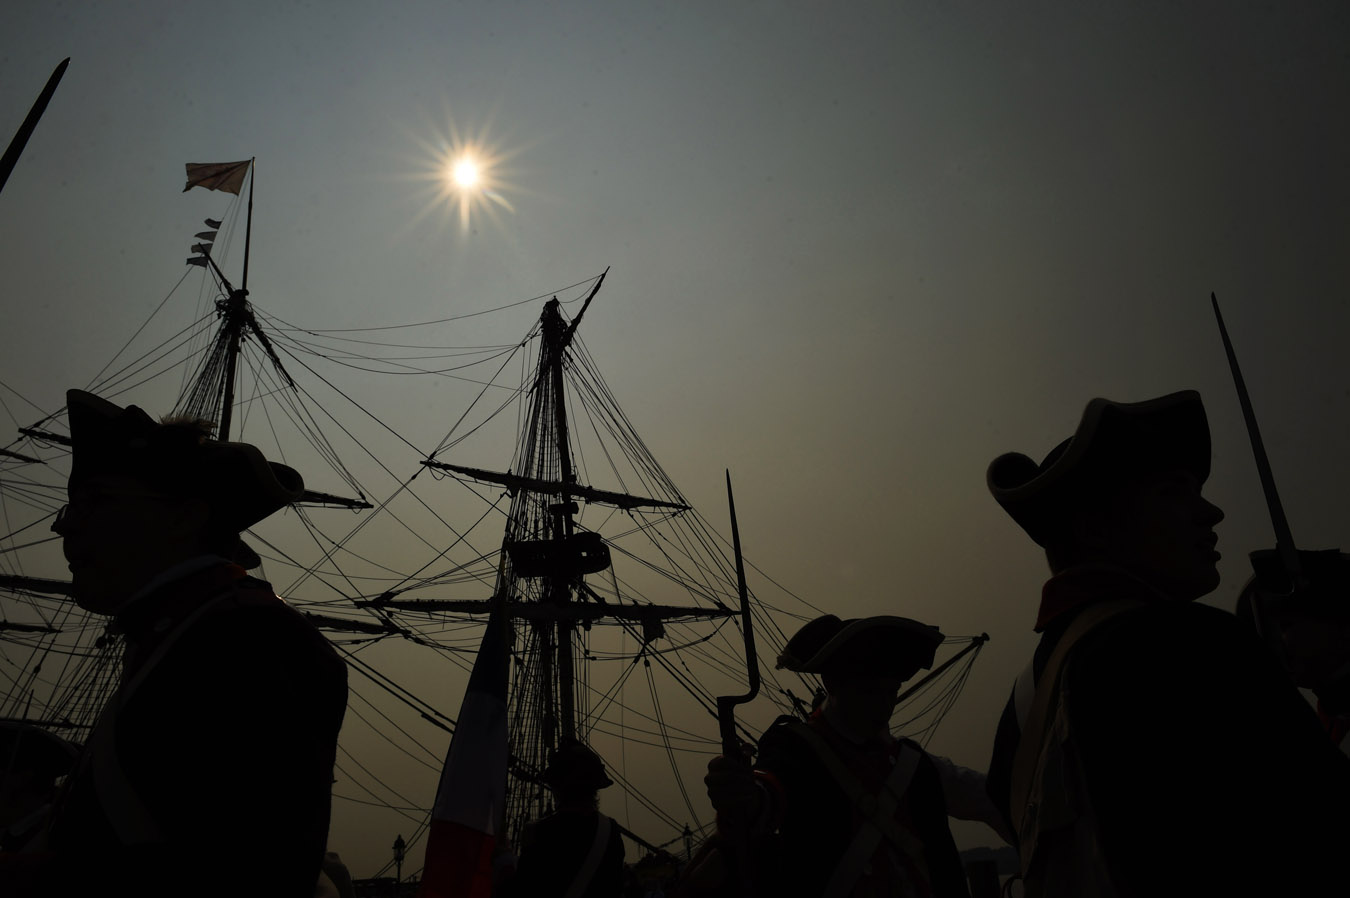 Reenactors are seen along with the French ship Hermione prior to a ceremony welcoming the vessel on Wednesday June 10, 2015 in Alexandria, VA. The Hermione is a replica of the ship that brought the Marquis de Lafayette back to America in 1780. (Photo by Matt McClain/ The Washington Post)